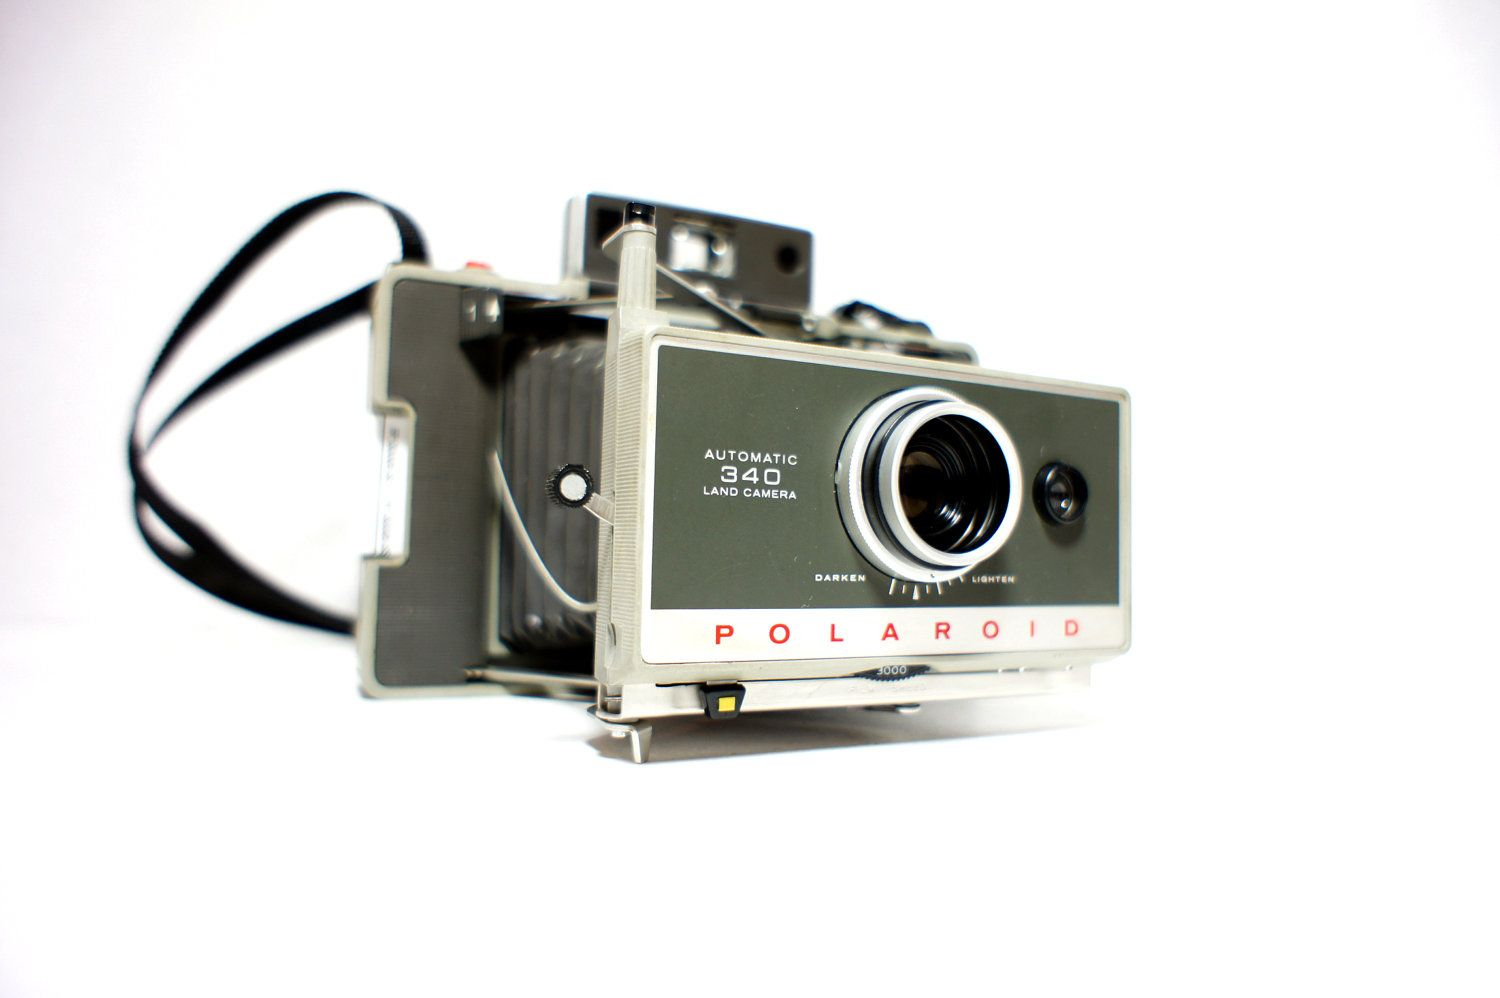 Modified 340 Polaroid Land Camera Film Tested Working Of Digital Cameras